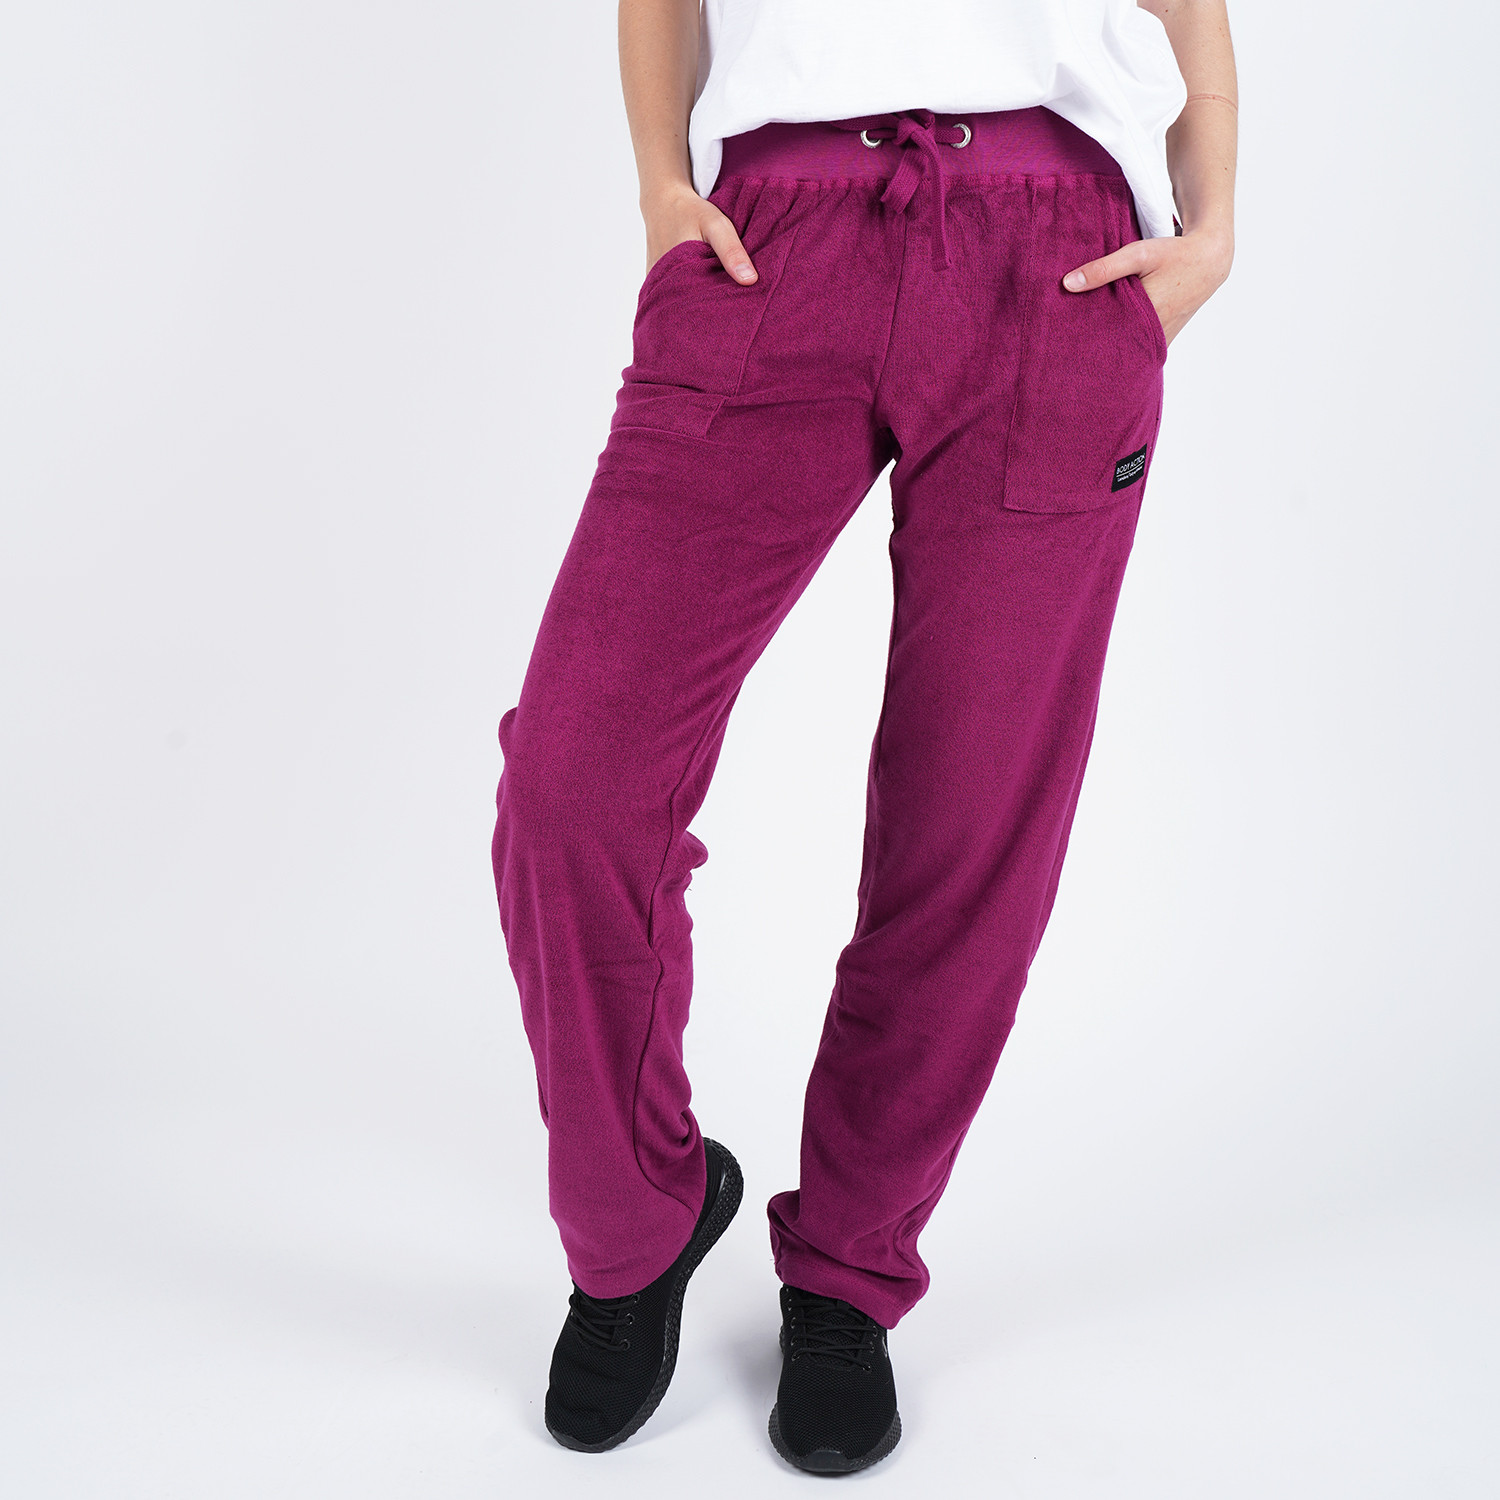 Body Action Women's Basic Terry Pants (9000050088_1893)